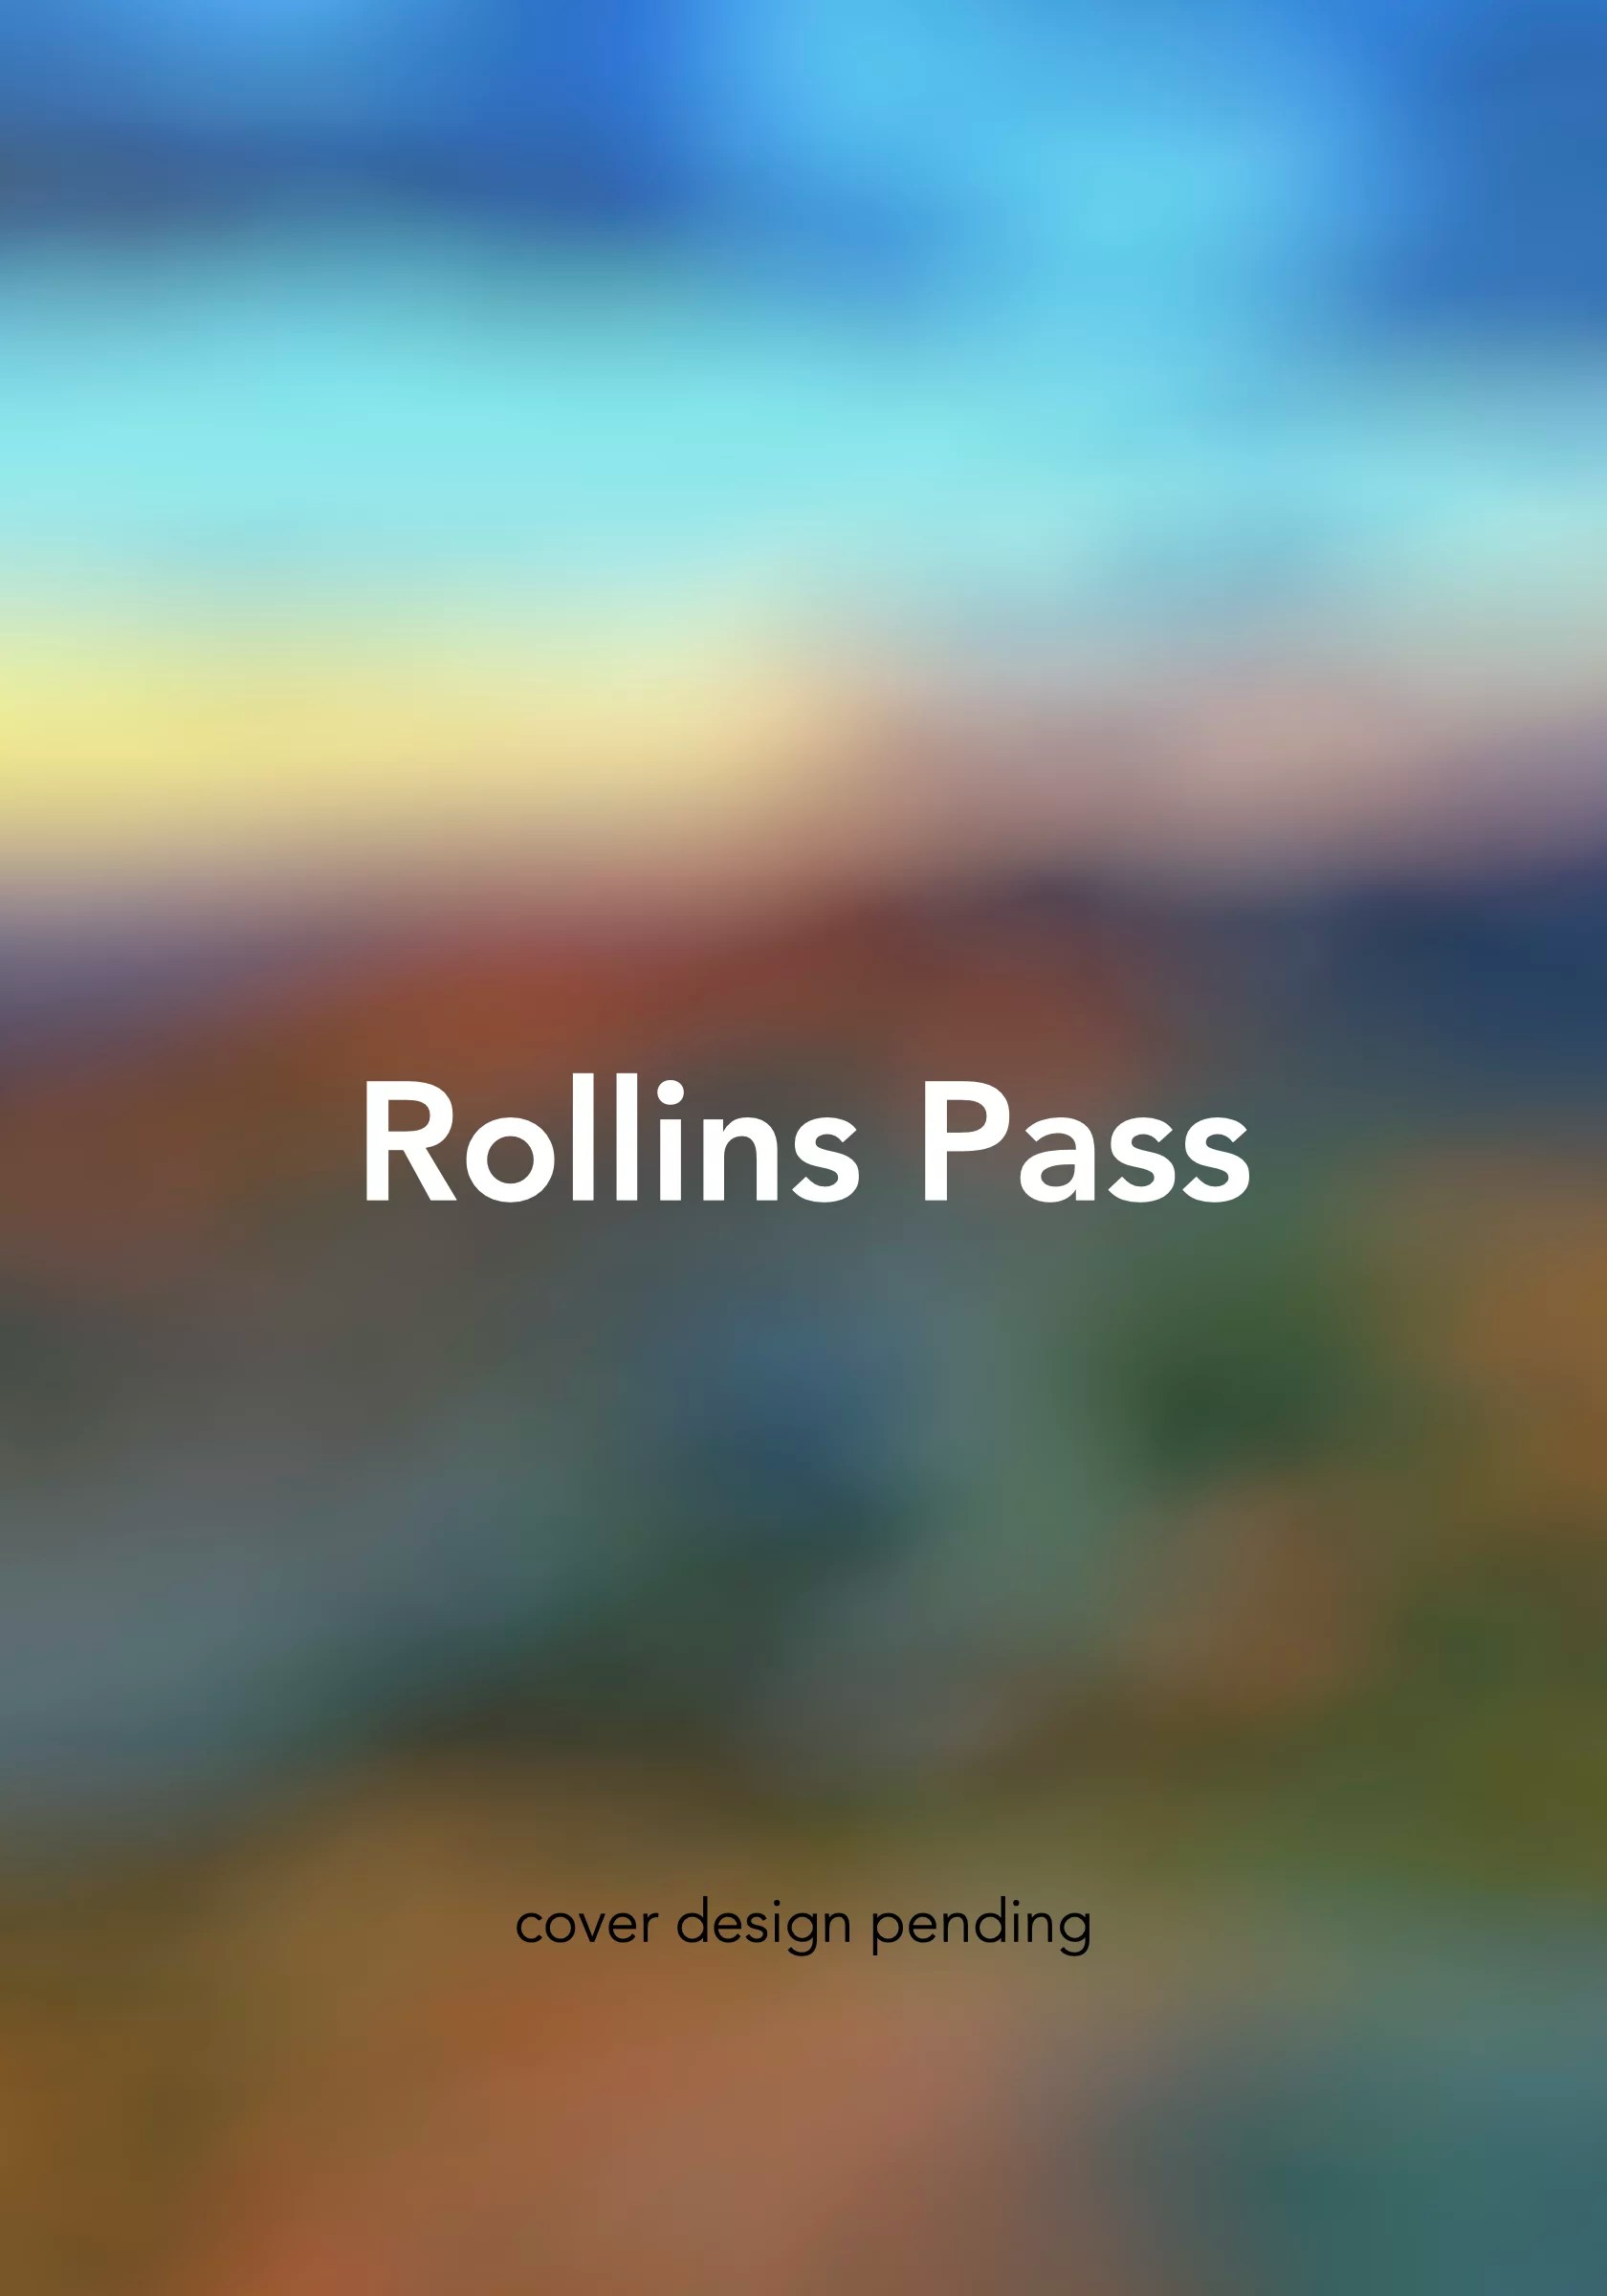 Rollins Pass Blurred Cover